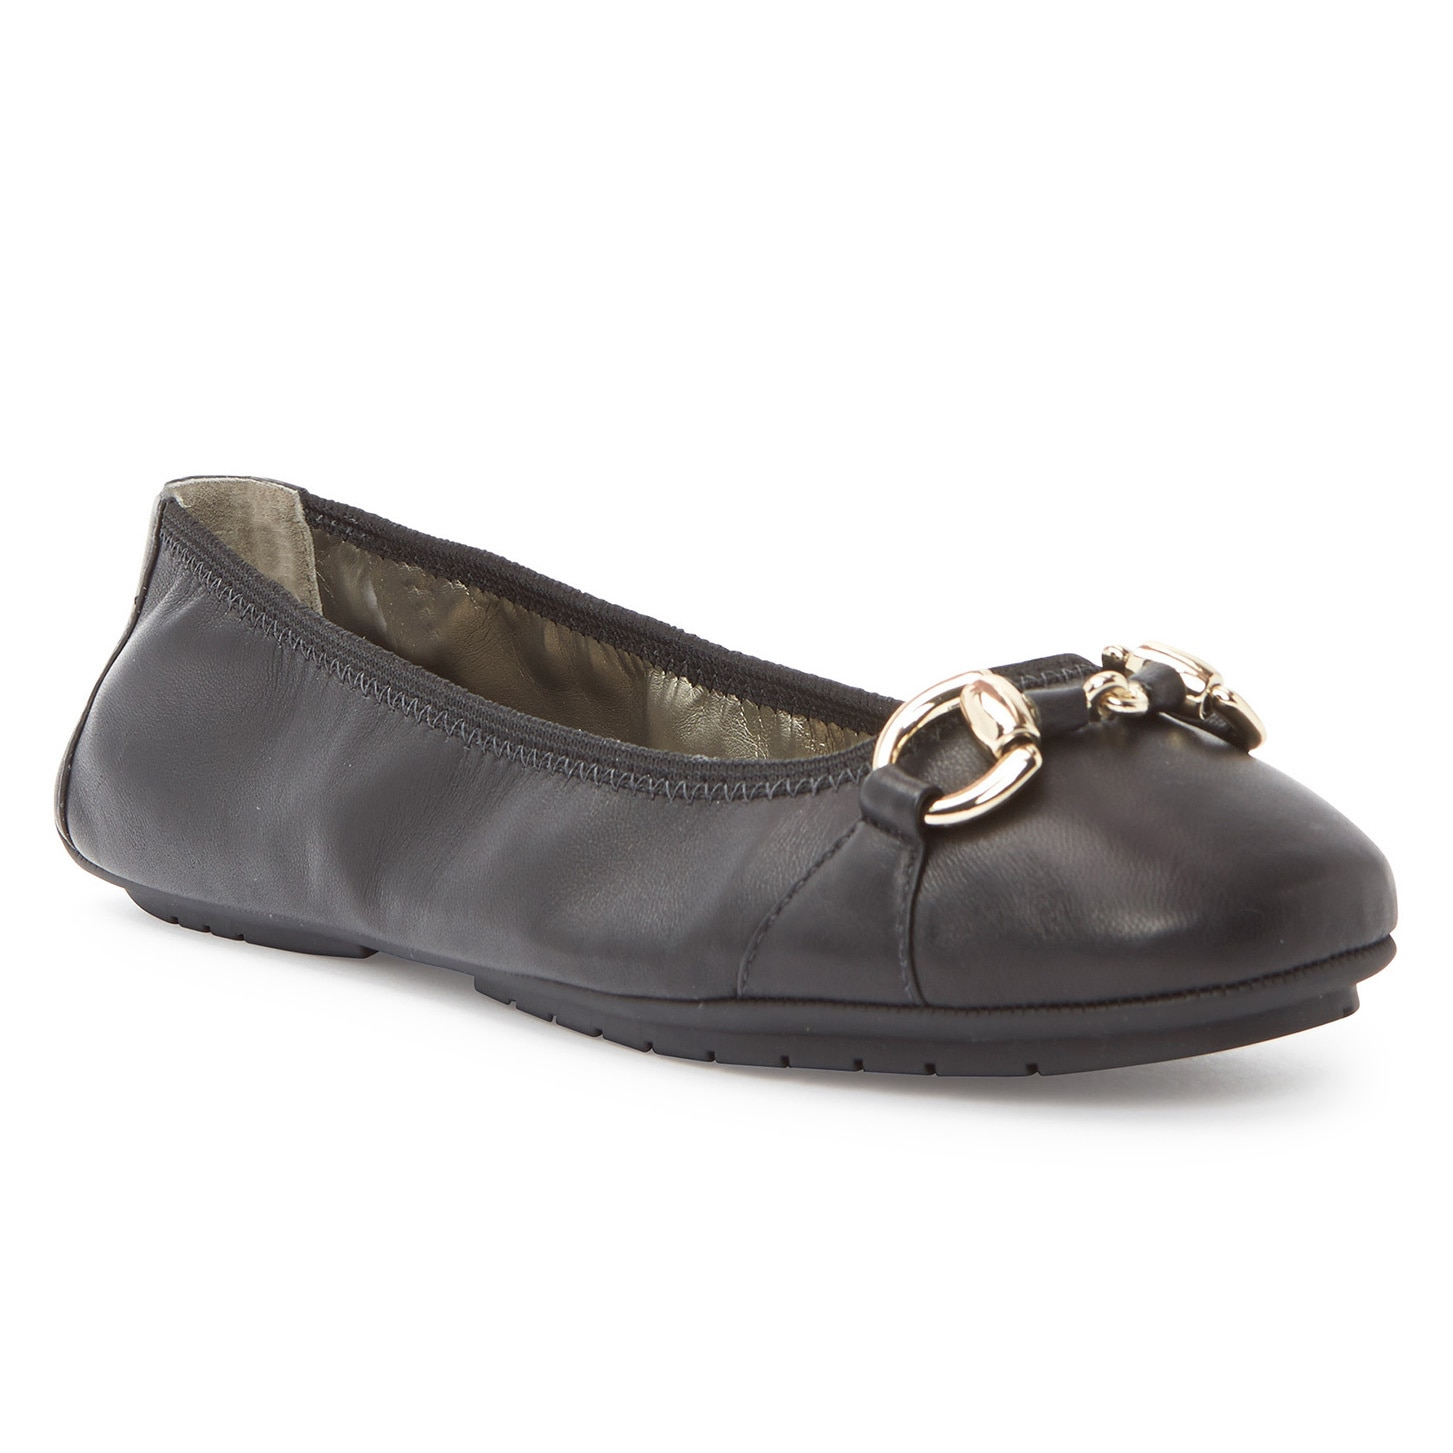 Me Too Women's Legend2.0 Nappa Leather Padded Flats by Overstock